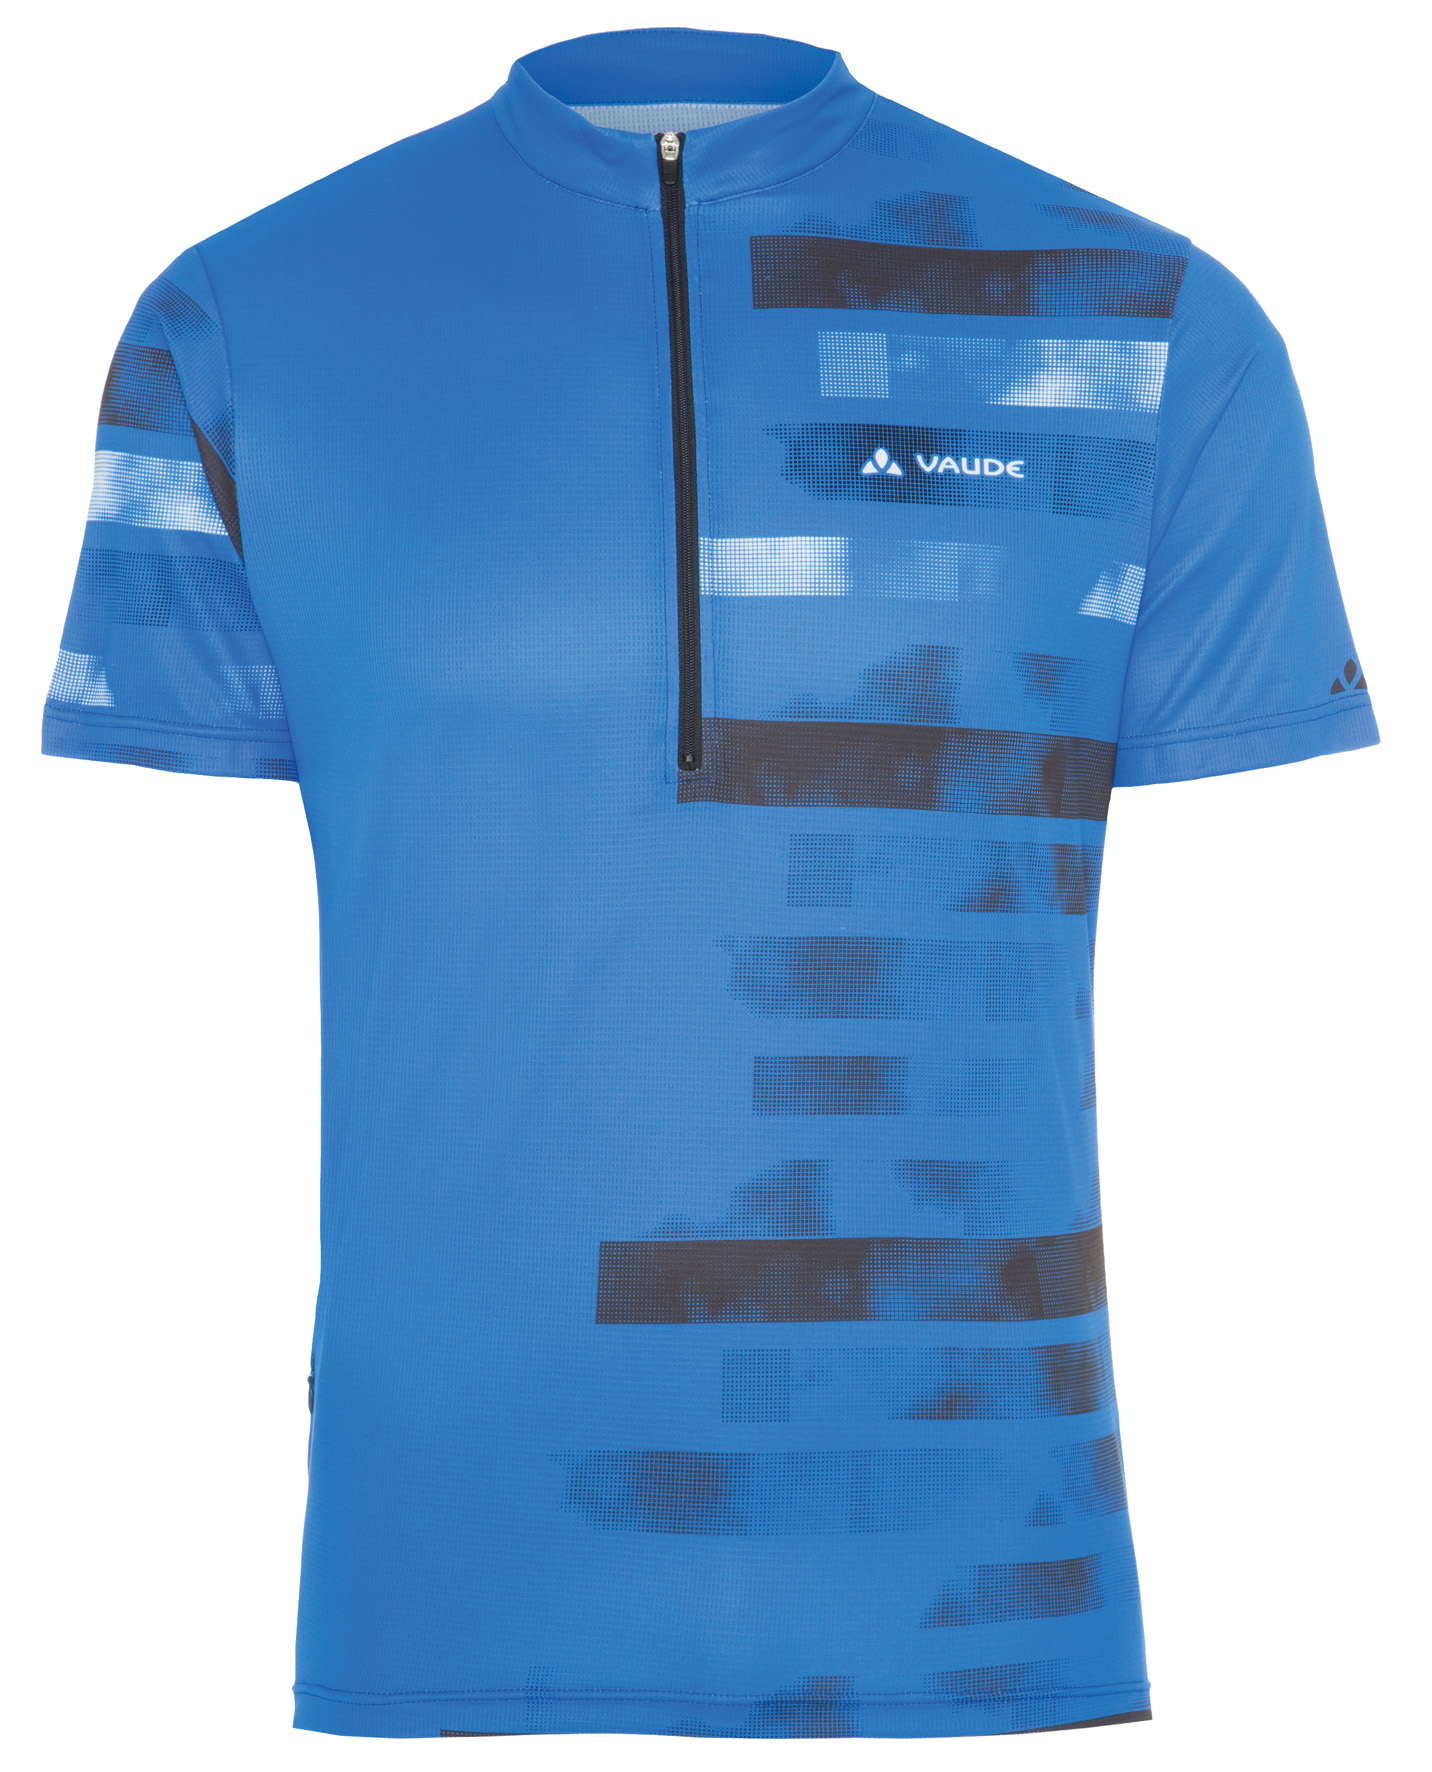 Men´s Tremalzo Shirt hydro blue Größe S - schneider-sports